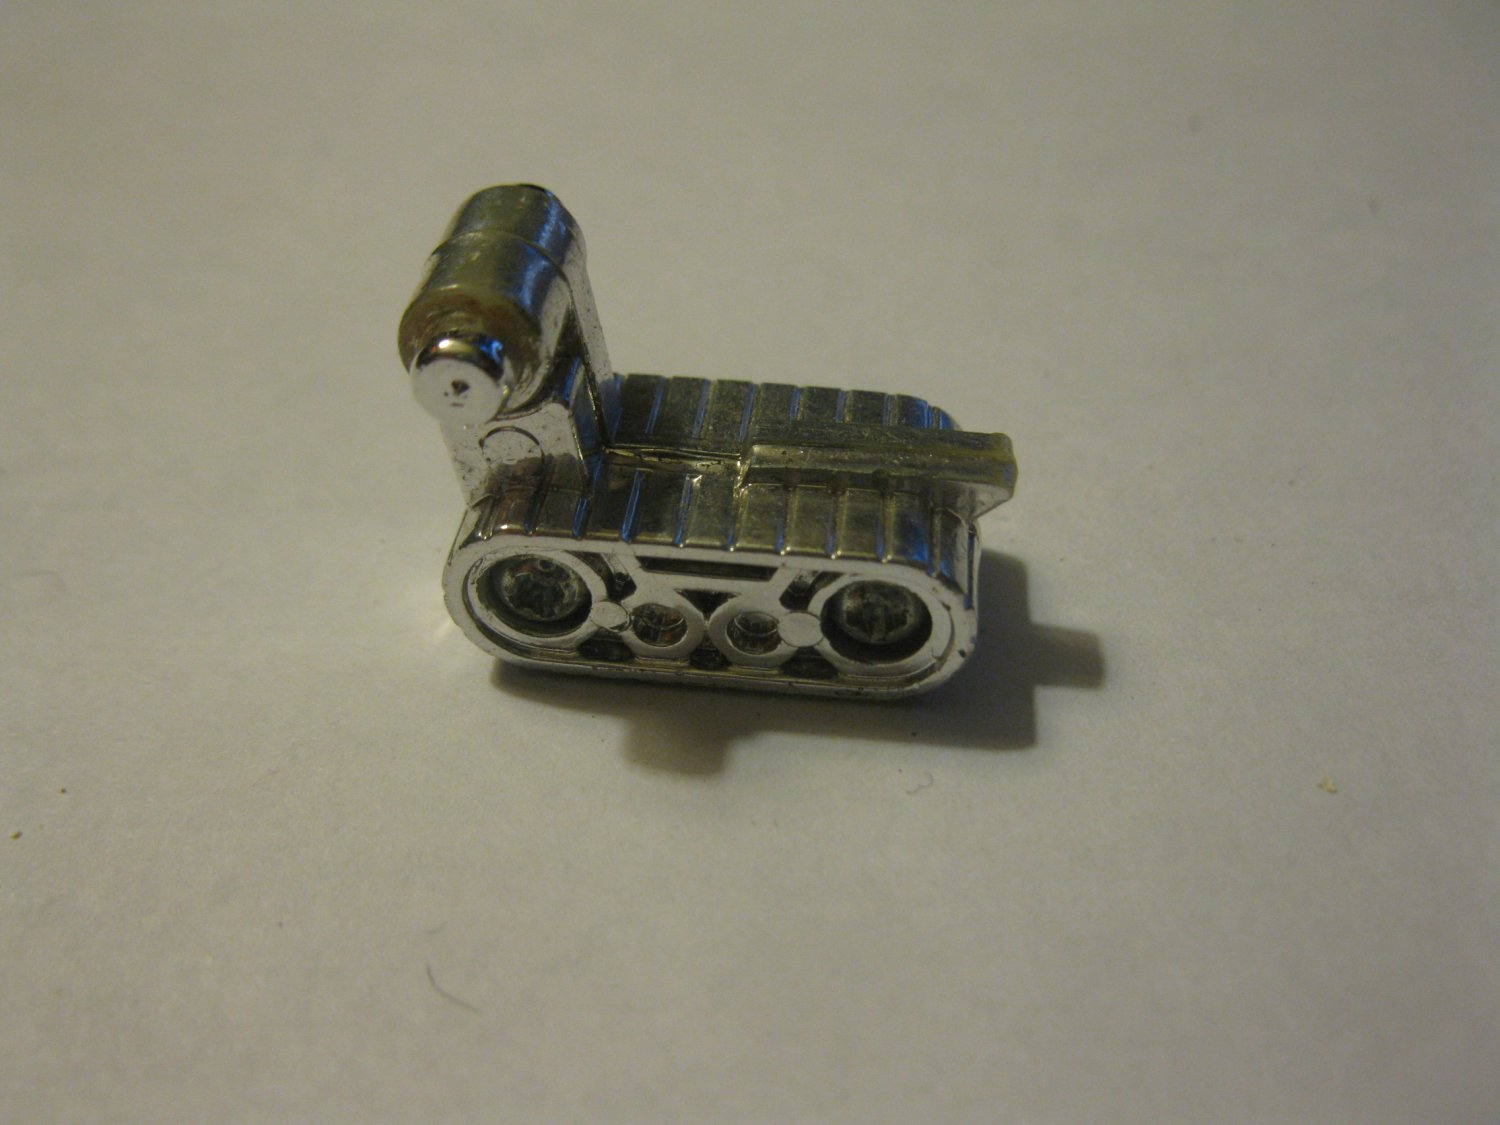 G1 Transformers Action figure part: 1984 Ratchet - Ambulance Mounted Gun Front tank Tread